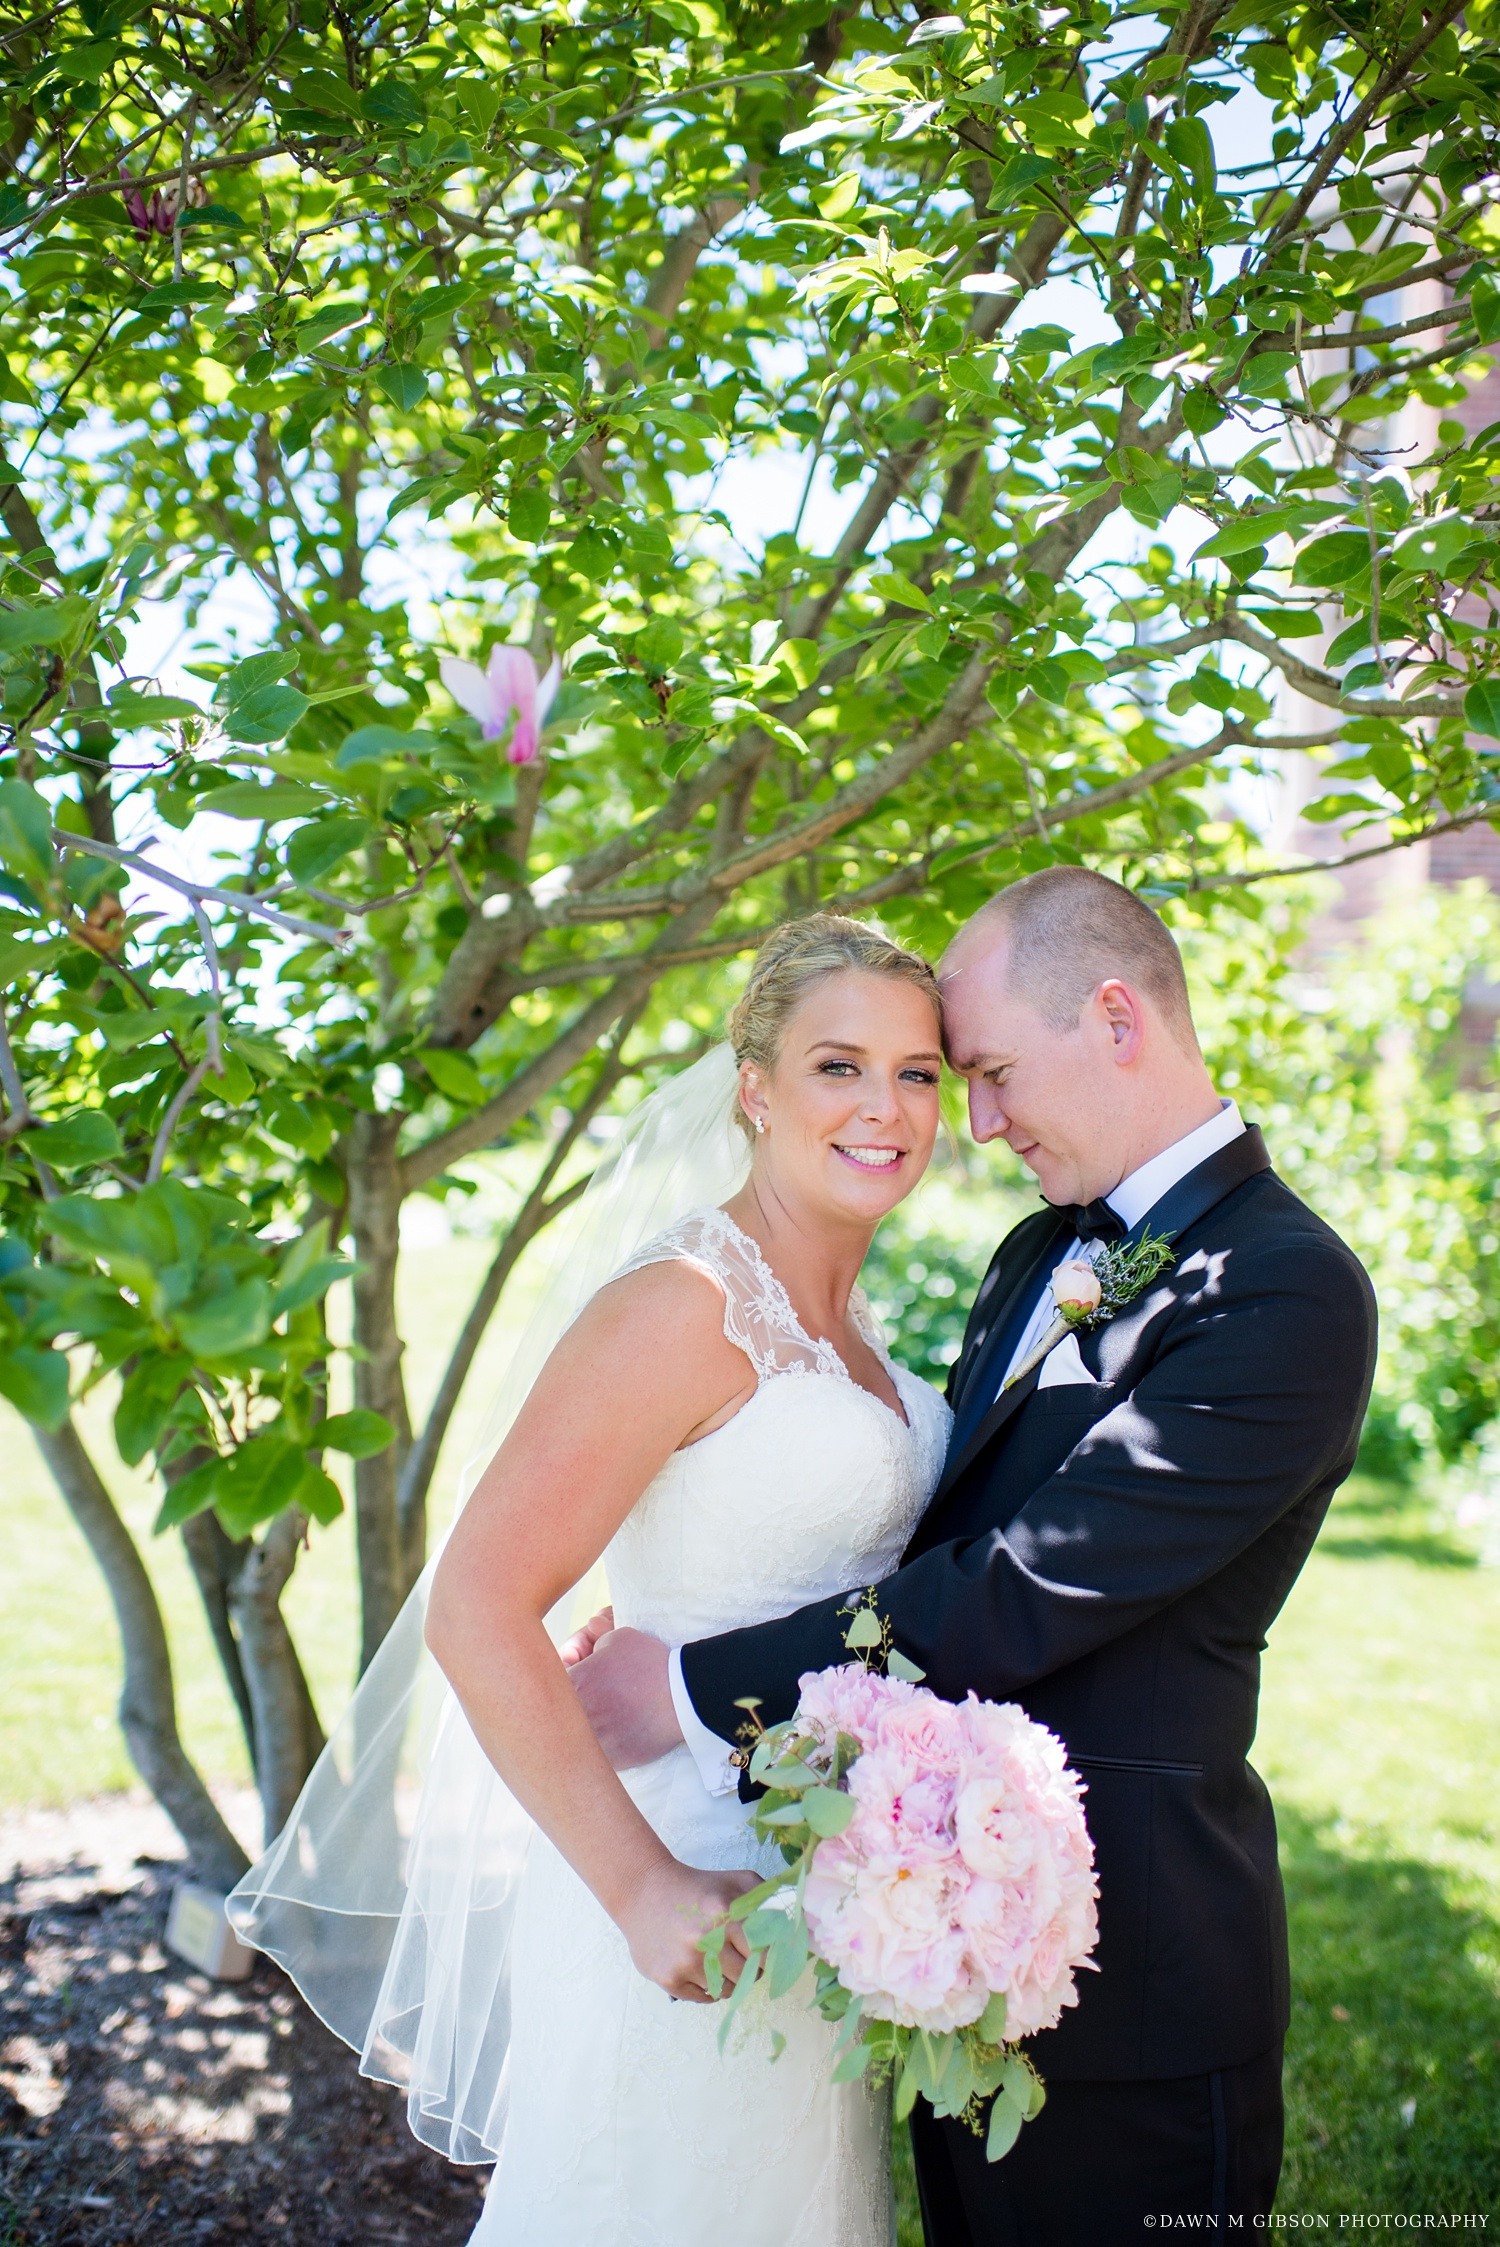 buffalo_wny_rochester_wedding_photographer_dawnmgibsonphotography_strathallan_colgate_rochester_divinity_rochester_wedding_venues_0019.jpg